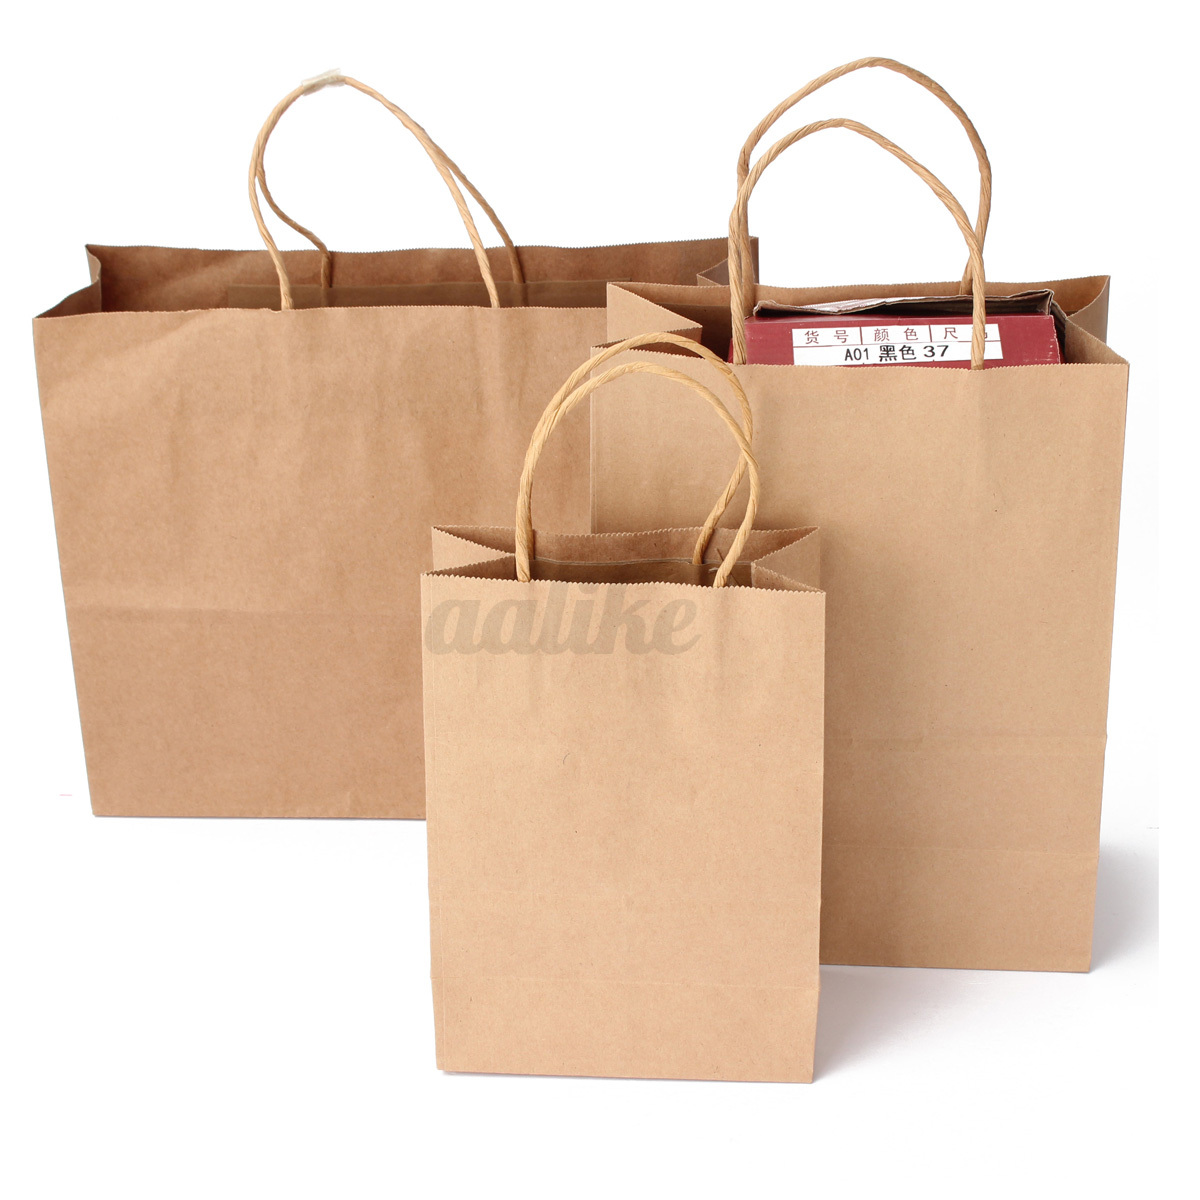 4c27172f0806 Paper Shopping Bags Bulk | Stanford Center for Opportunity Policy in ...